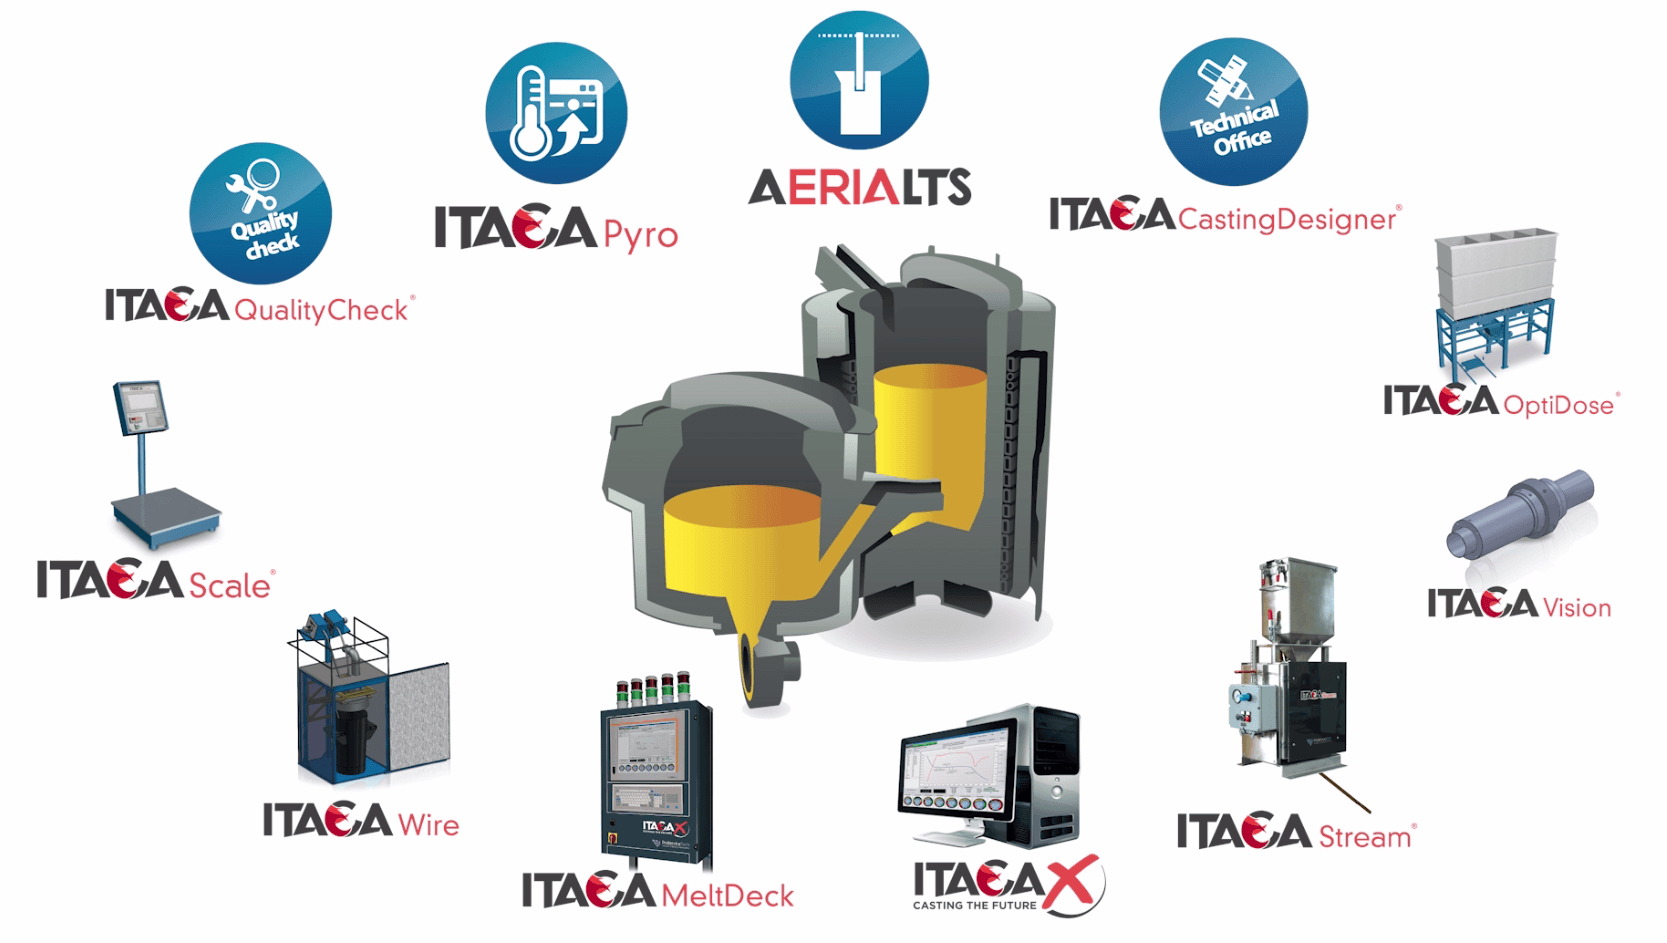 an illustration of ITACA Production and Dosing System